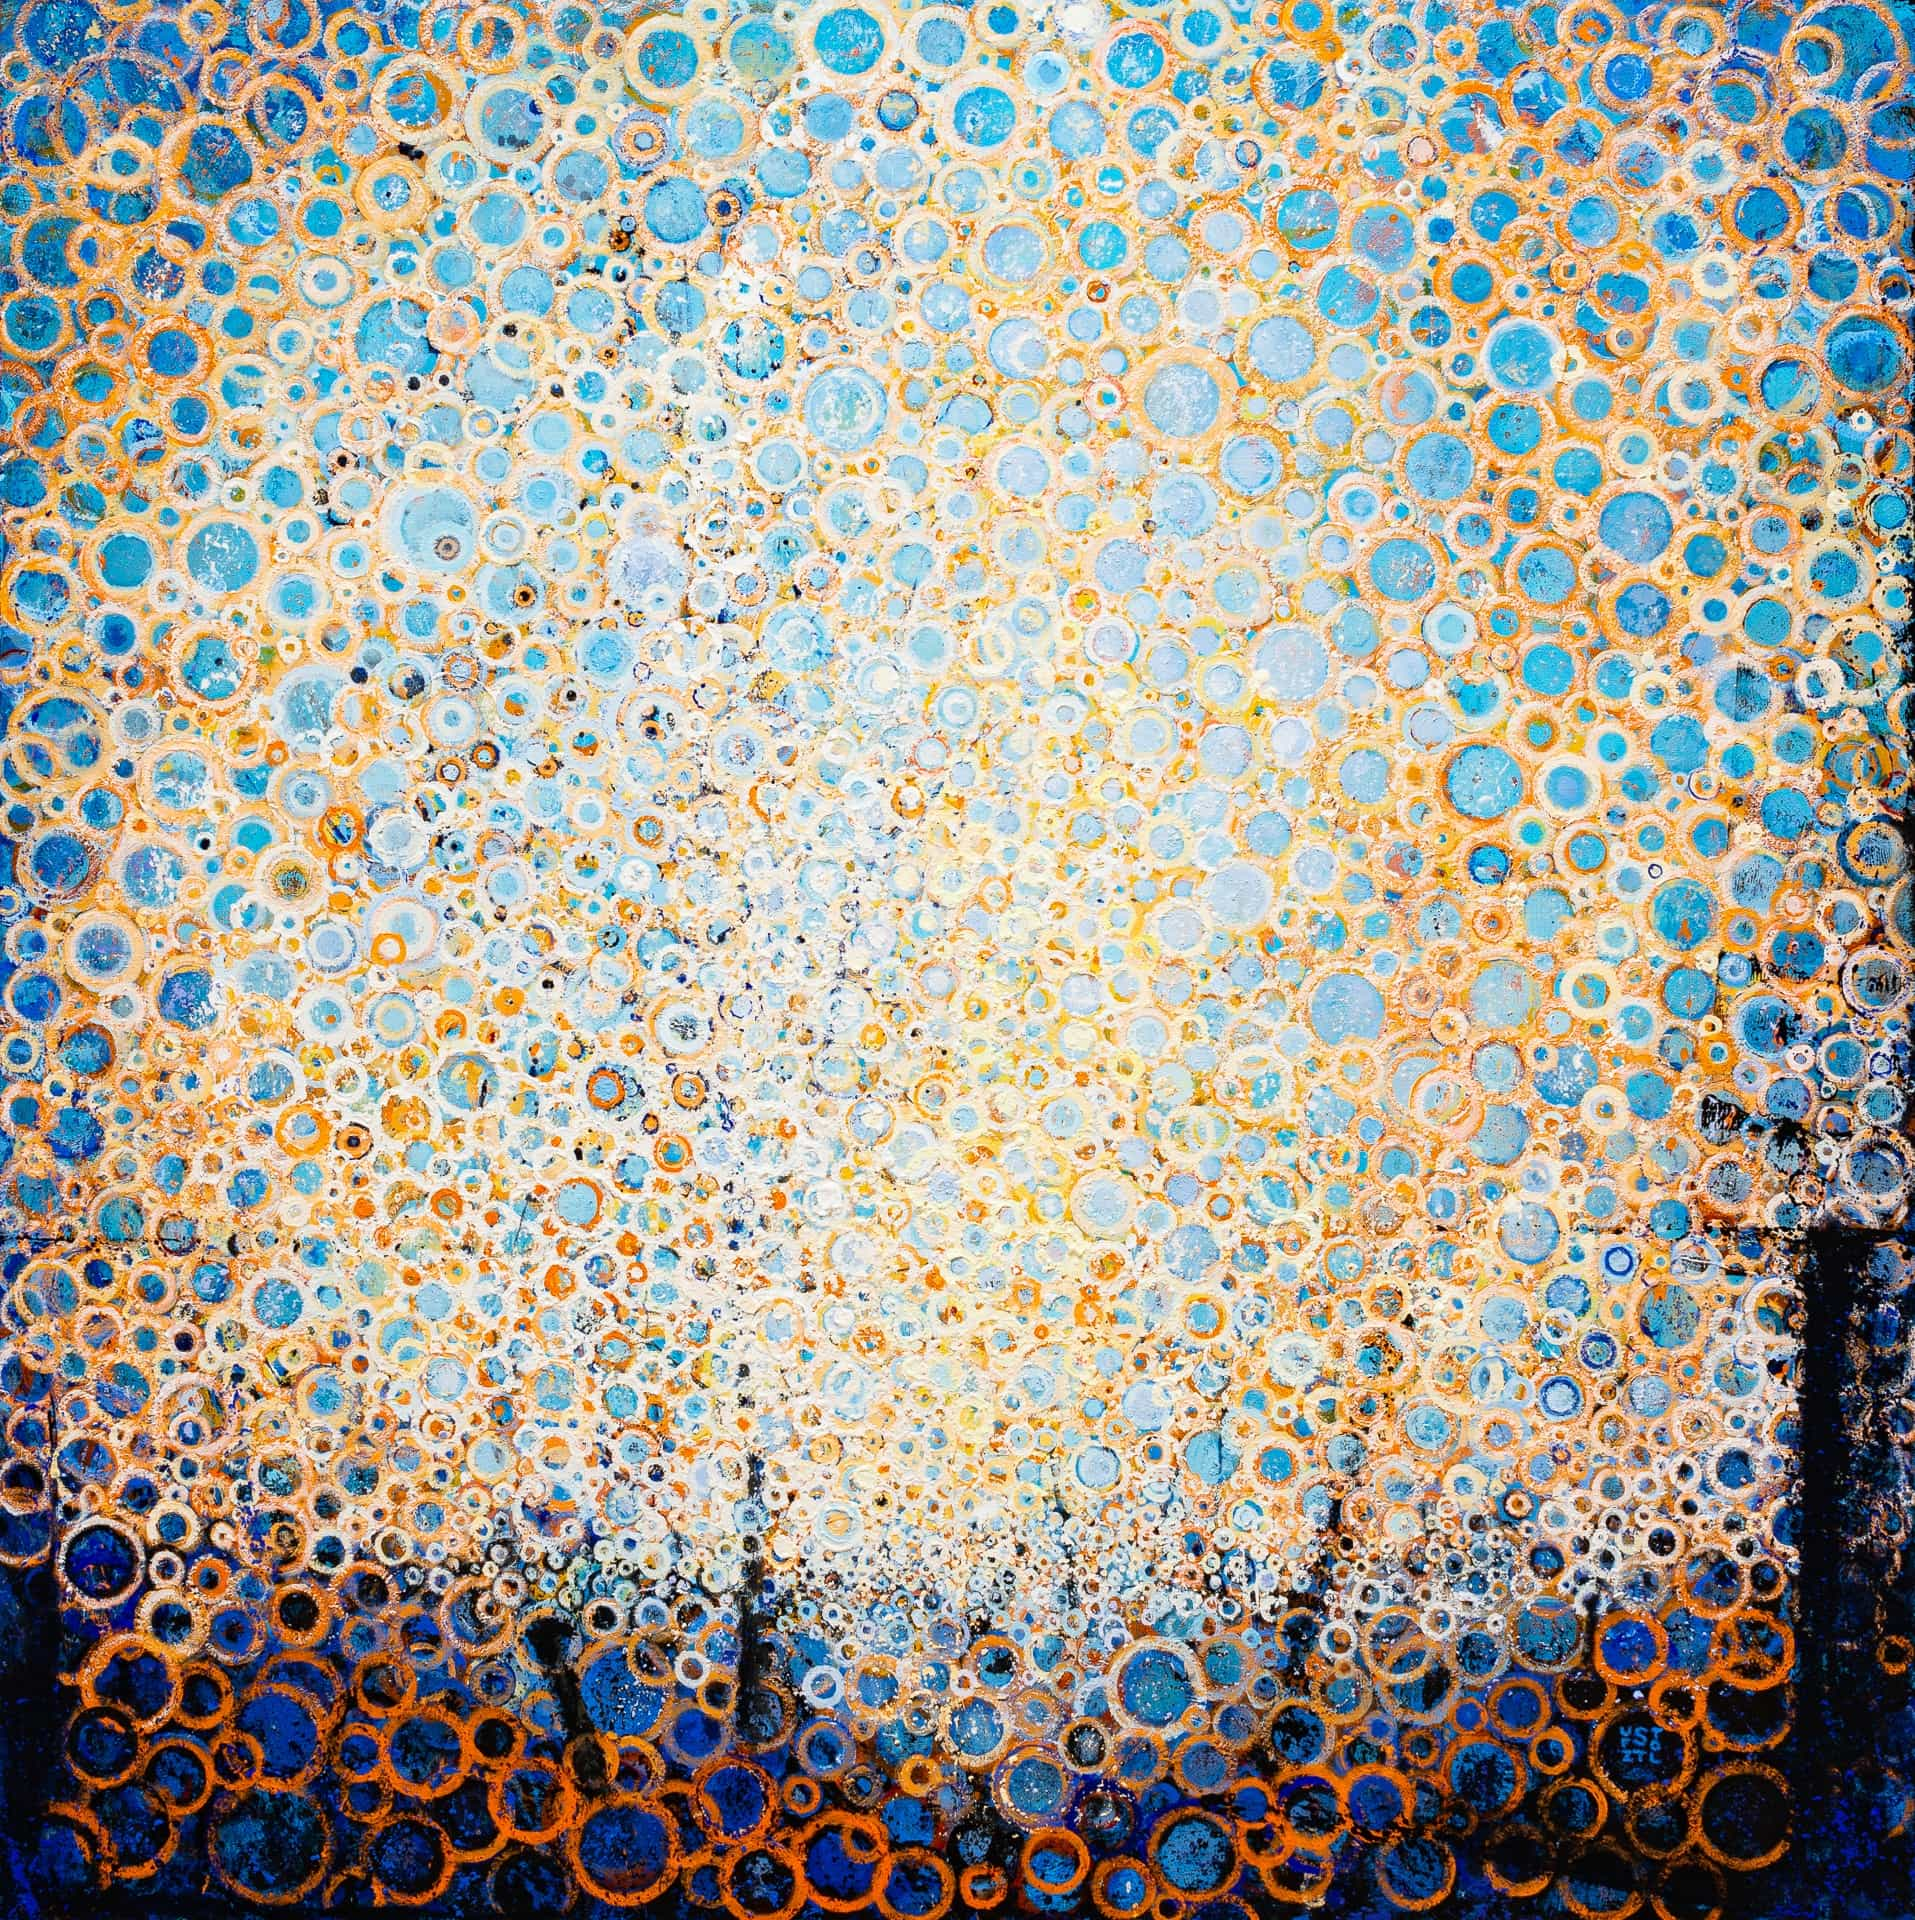 Early Morning Sunlight | vibrant orange and blue hand painted circles radiate lgiht in this painting titled Daylight by Randall Stoltzfus | 48 inches square | Acrylic dispersion on recycled polymer canvas